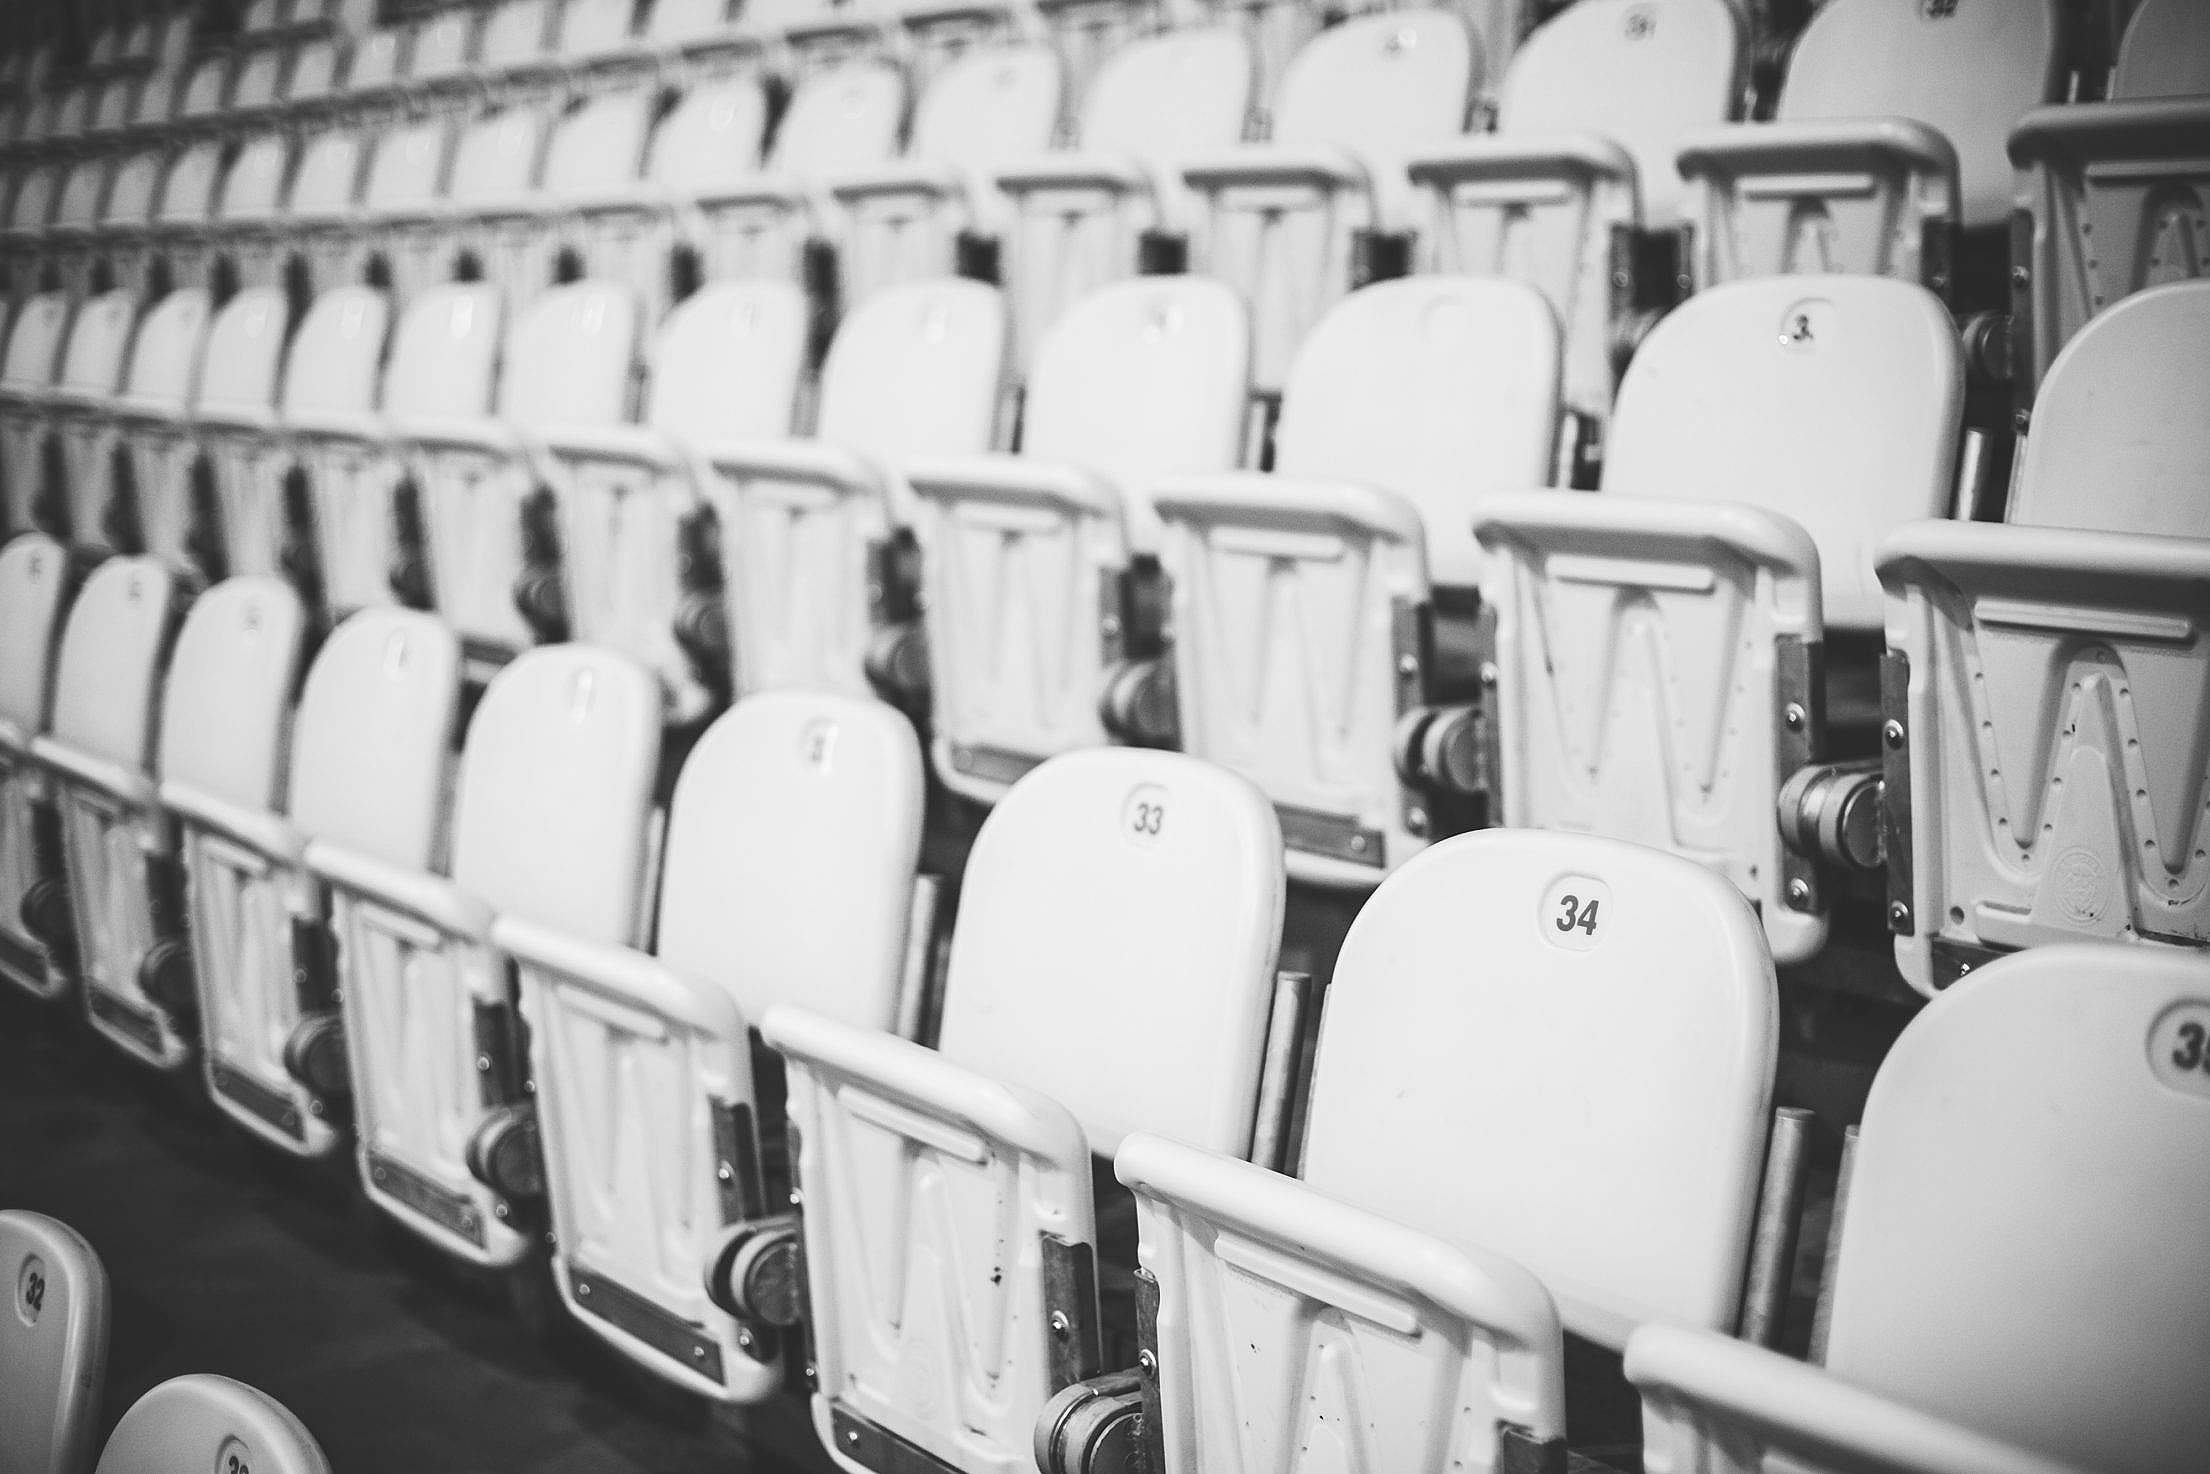 Numbered Stadium Seats in Black and White Free Stock Photo